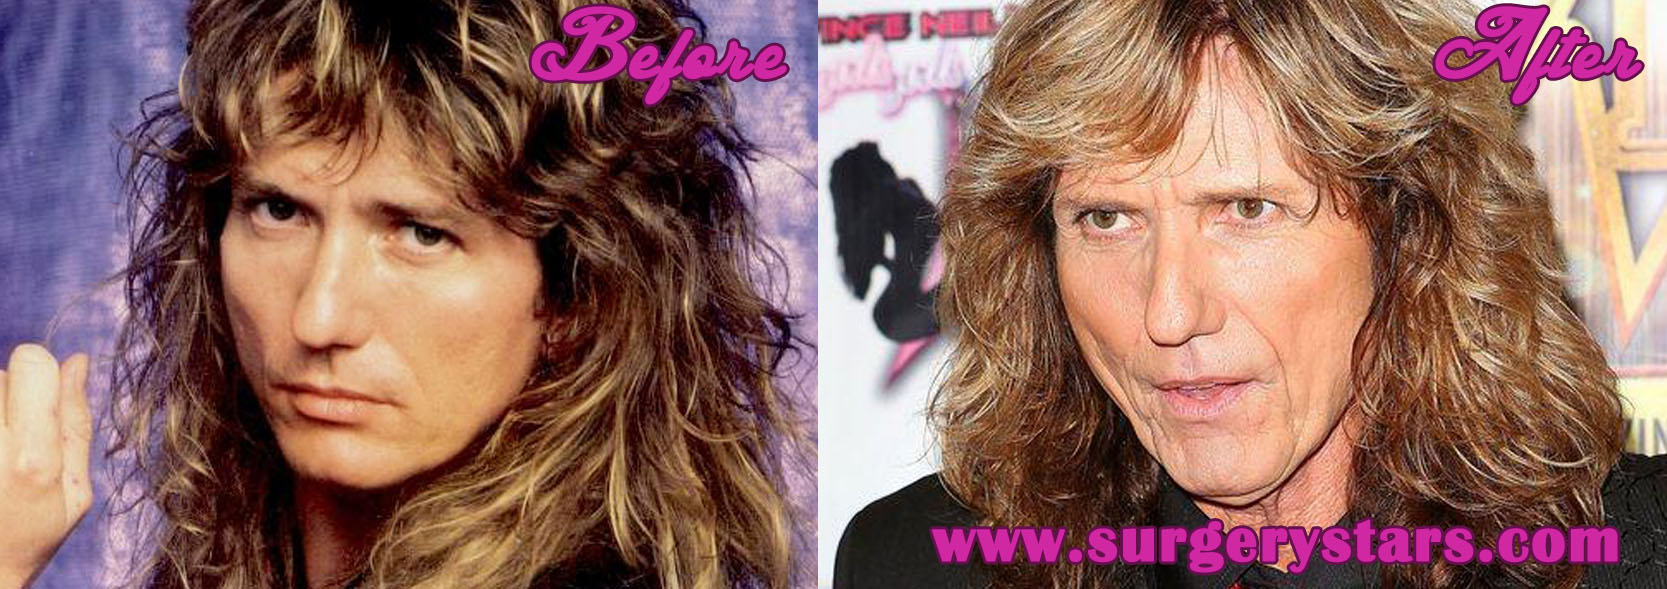 David Coverdale Plastic Surgery – Before and After Pictures